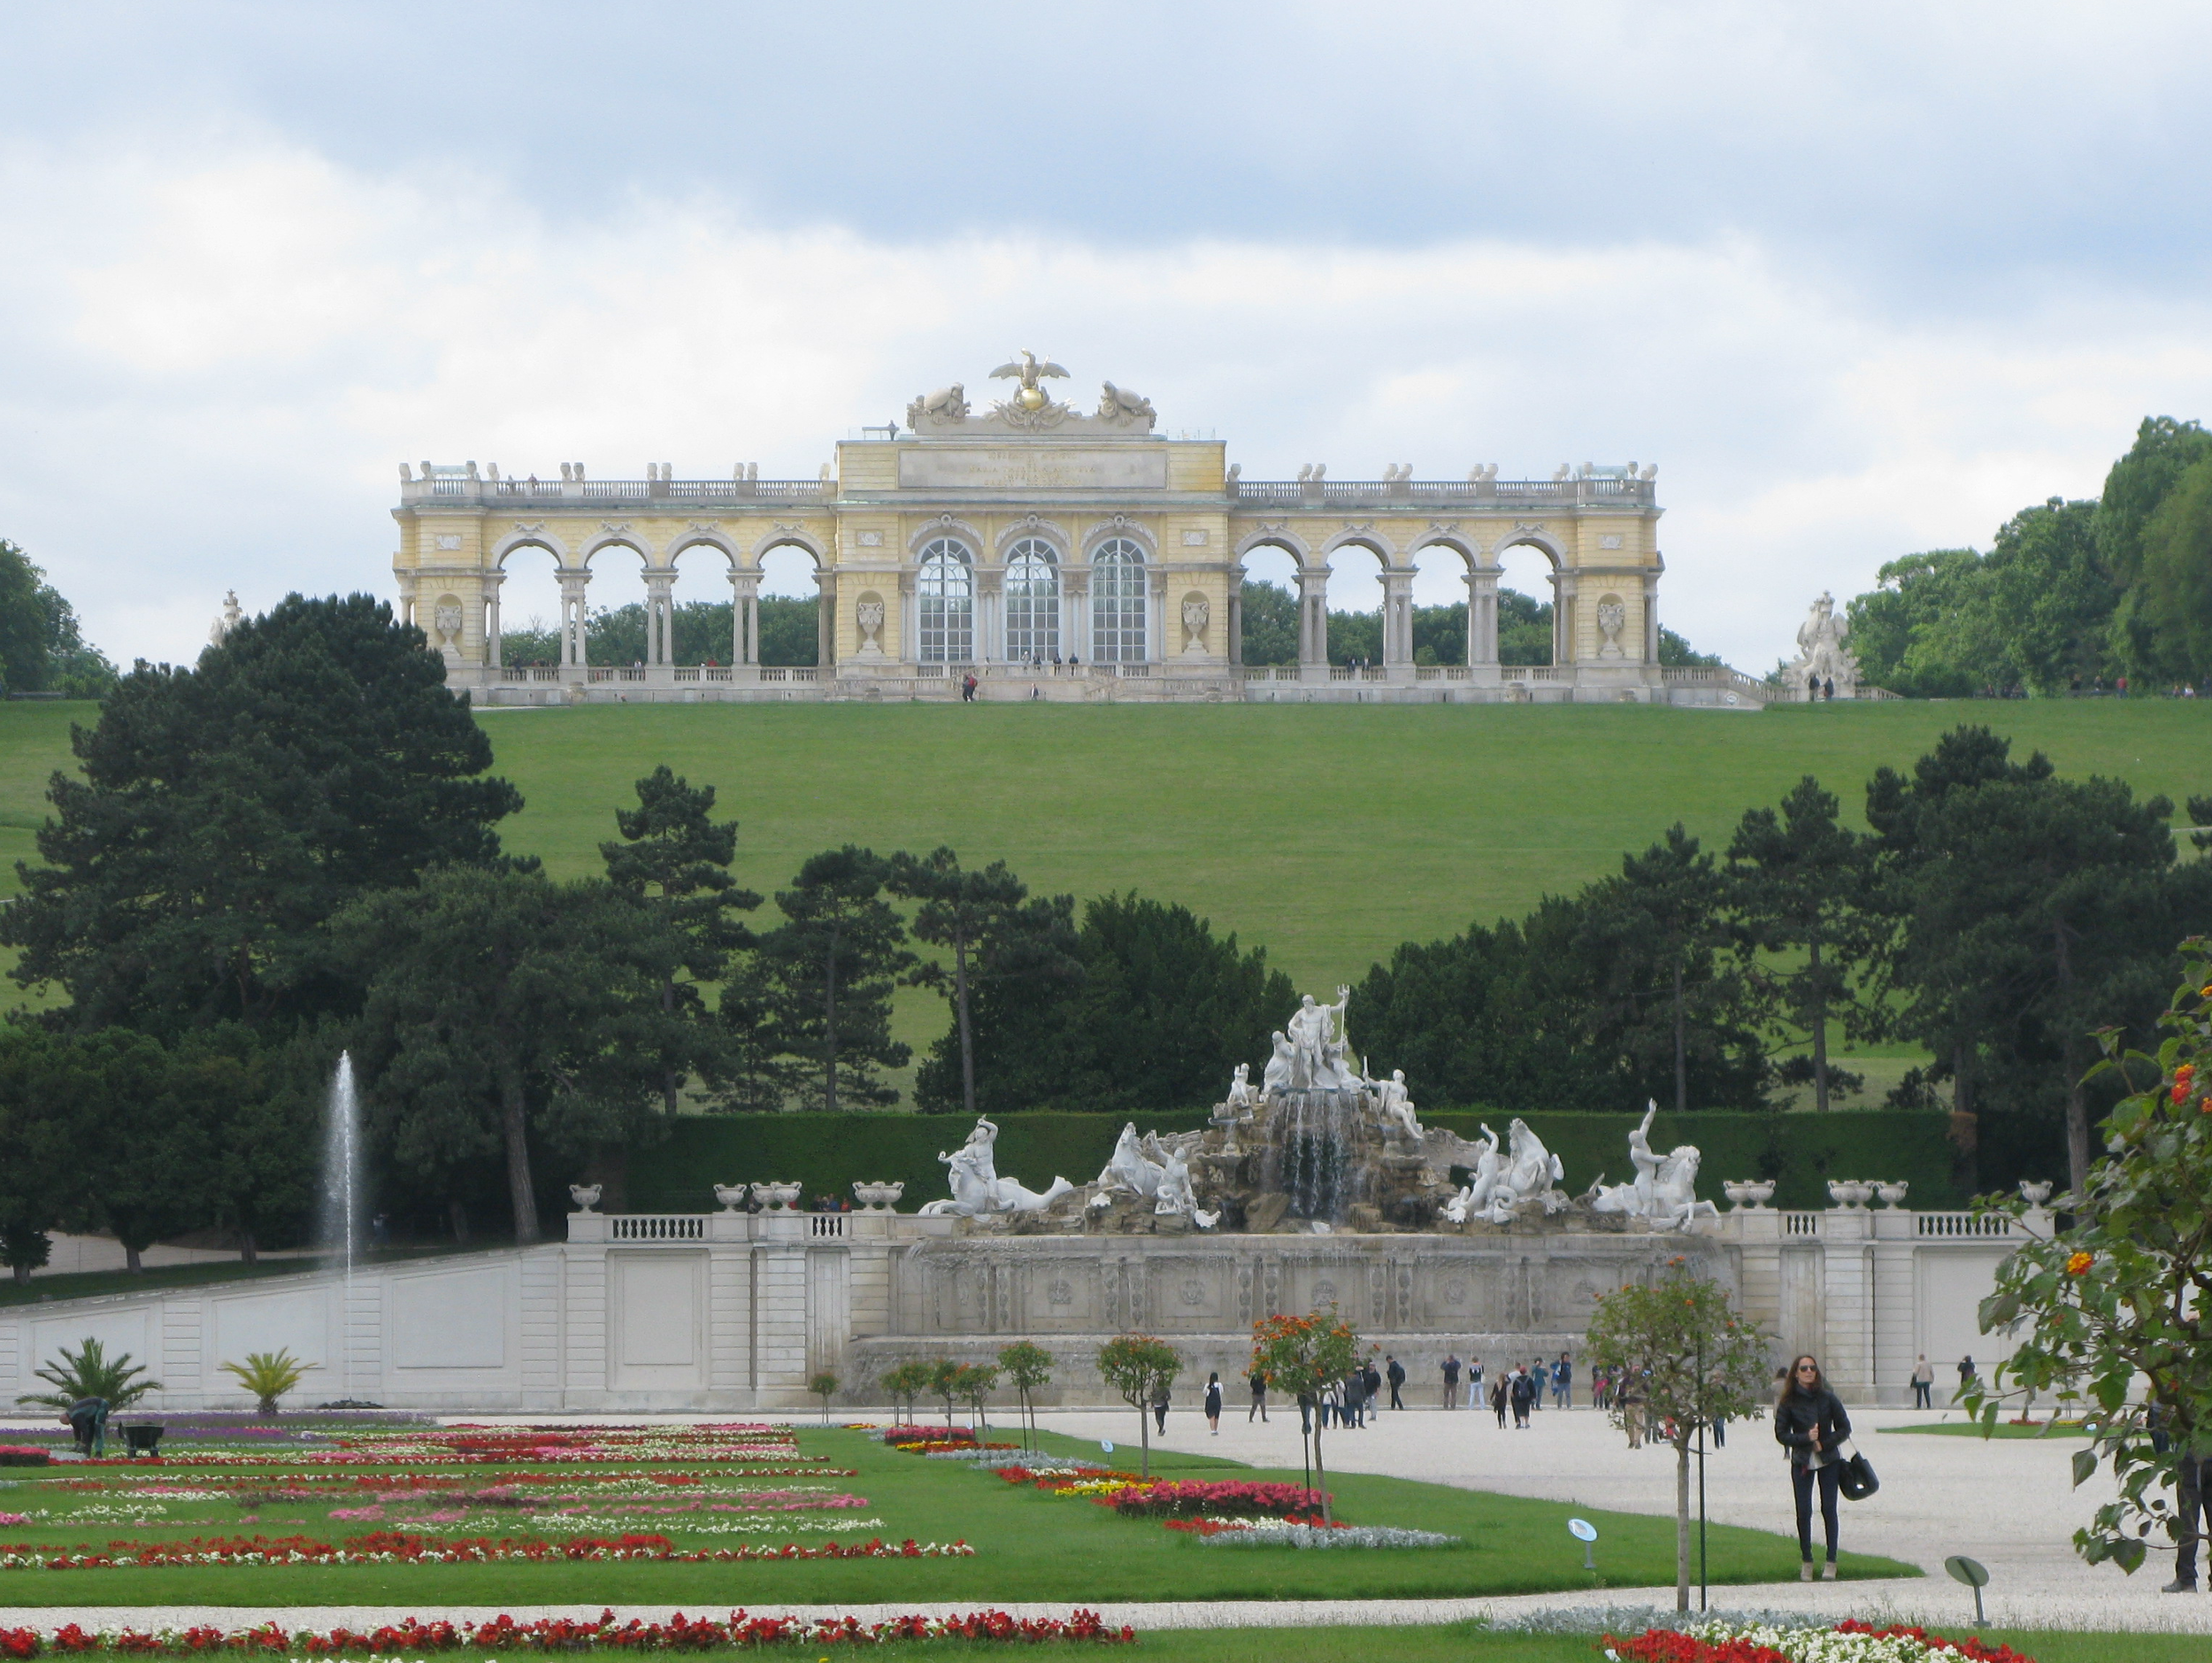 The Neptune Fountain and Gloriette in the background